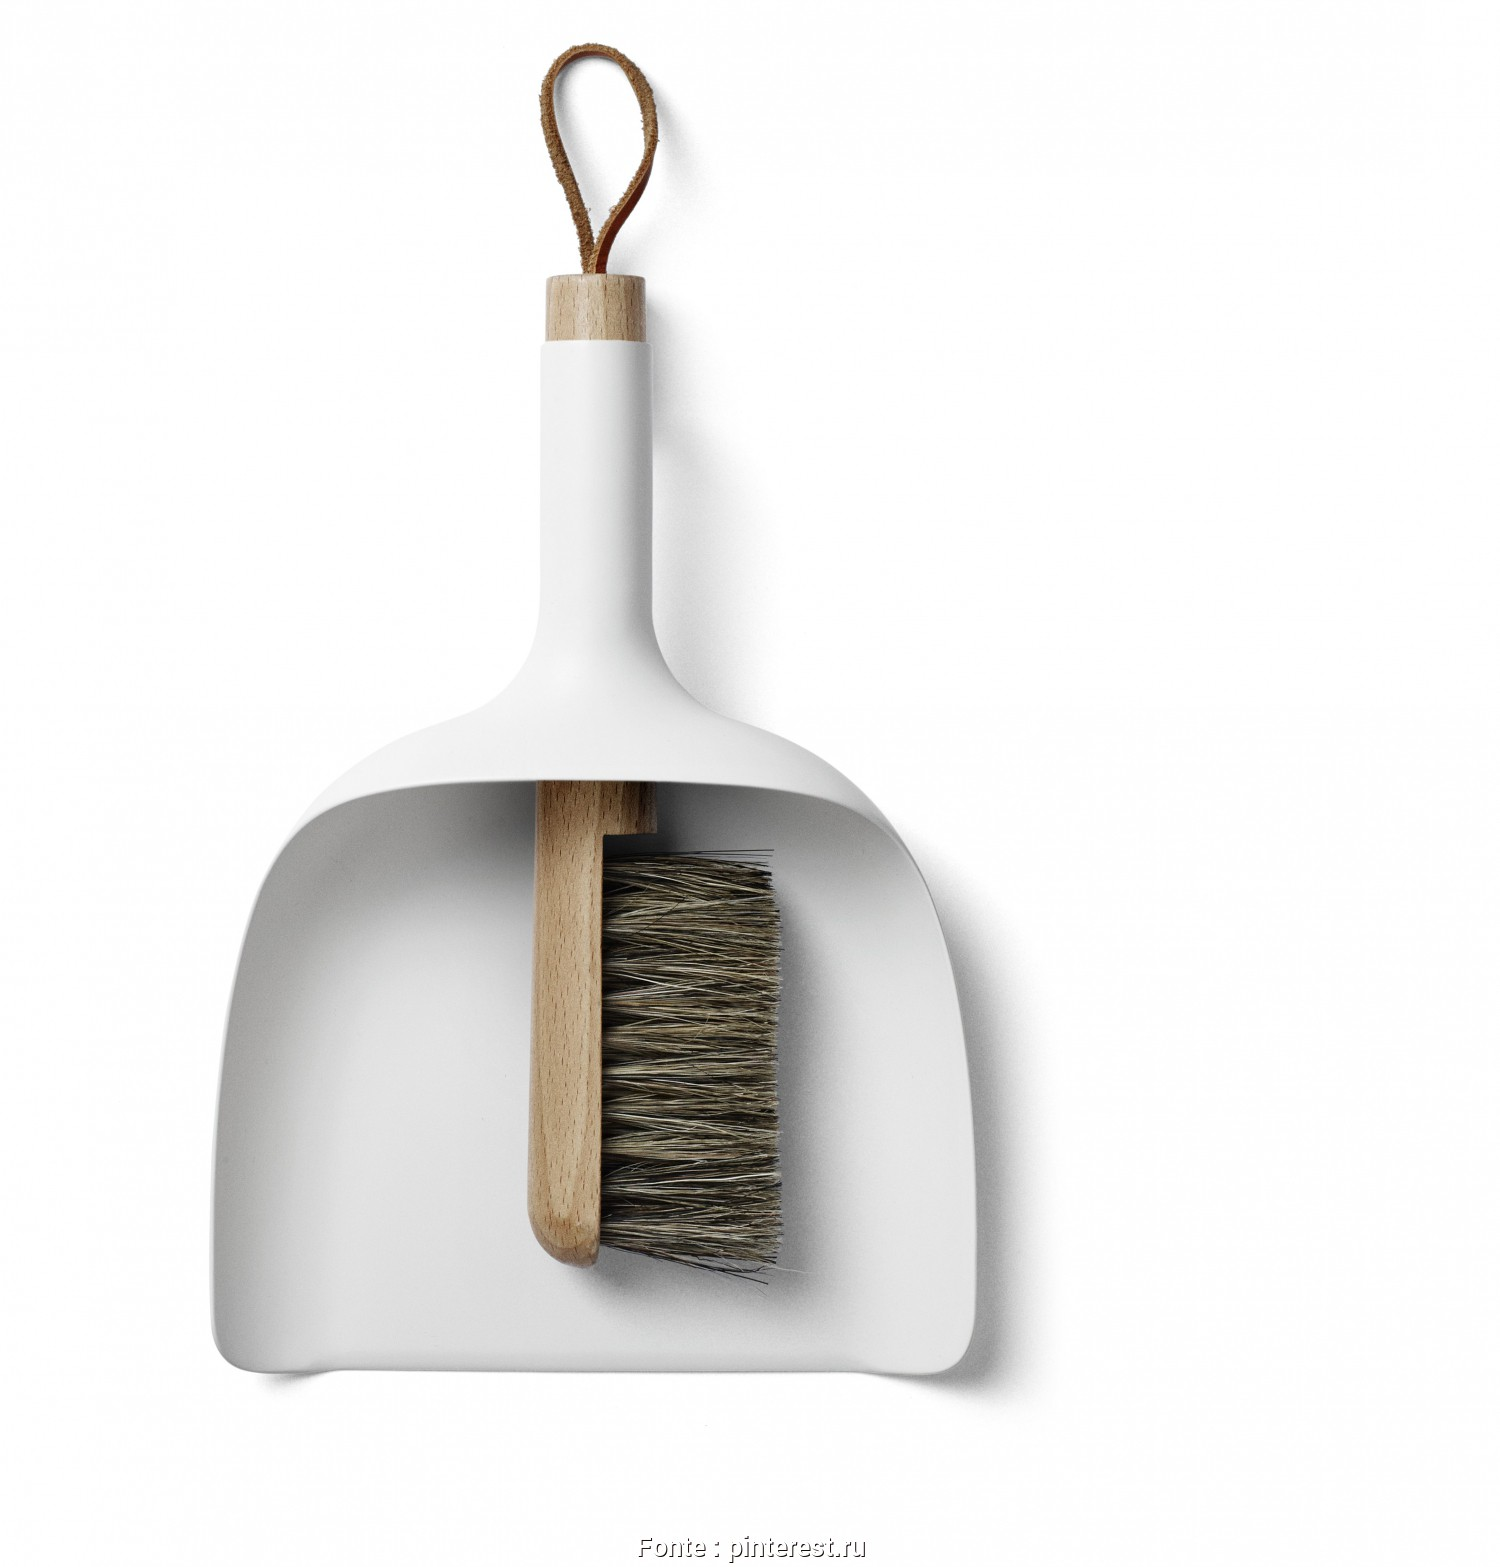 Ikea Stoffer En Blik, Esotico Sweeping Up Suddenly, Stylish With This Cool Sweeper, Funnel By, Kochanski, Menu., Cool Kitchen Stuff, Pinterest, Кухня